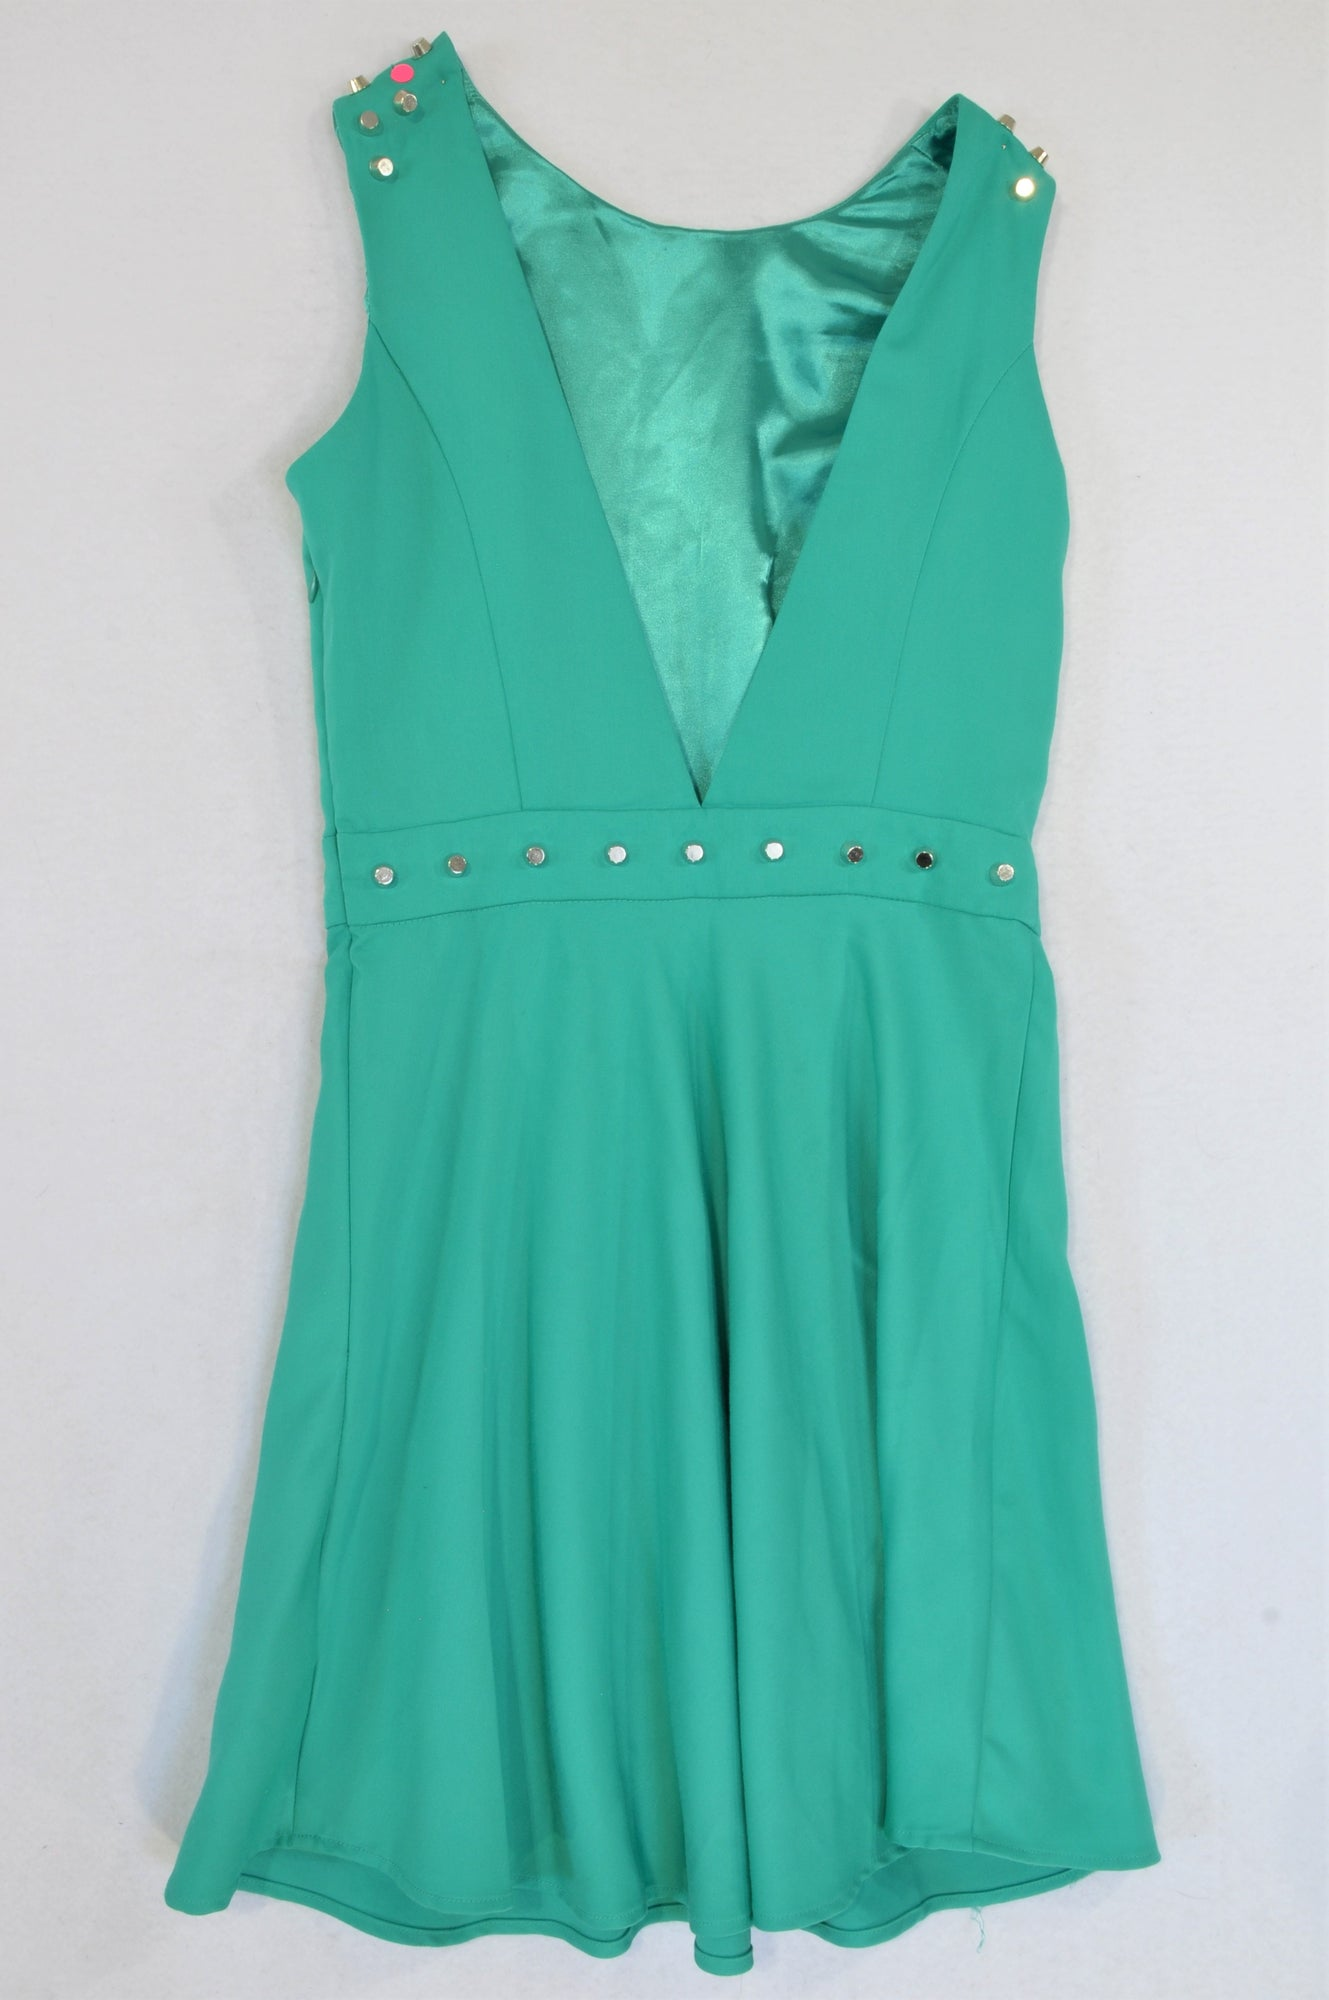 Forever 21 Green Studded Dress Women Size S